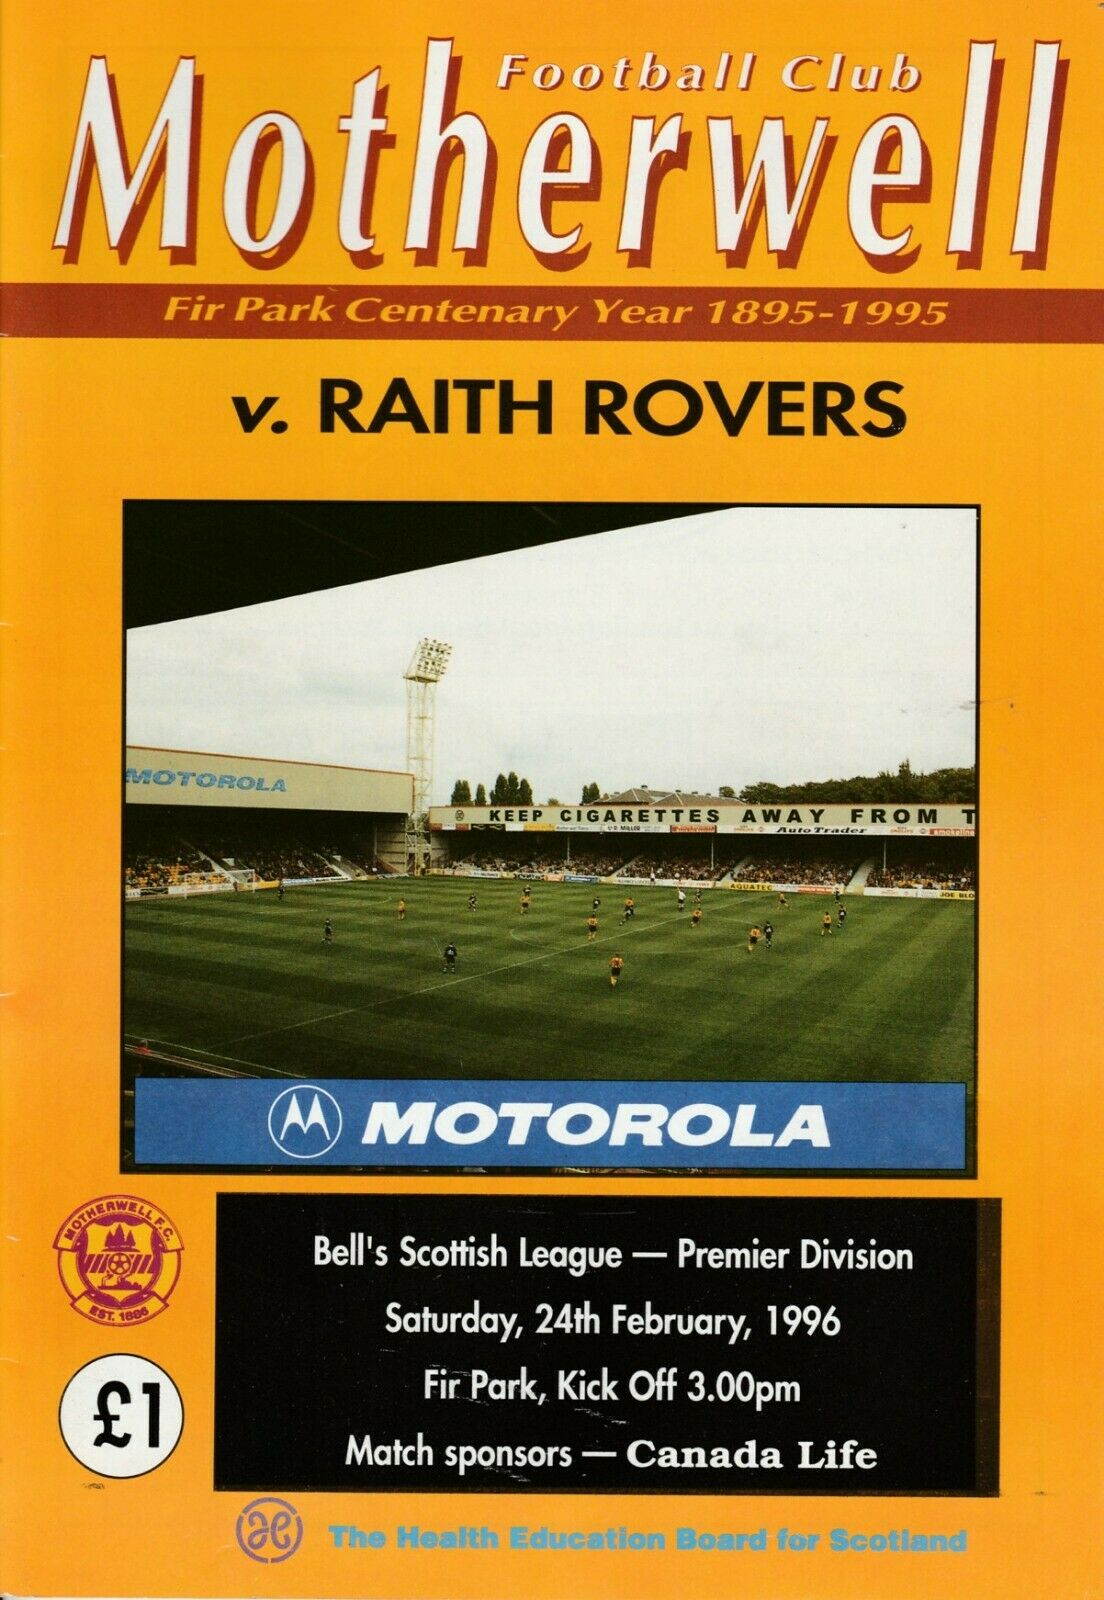 versus Raith Rovers Programme Cover